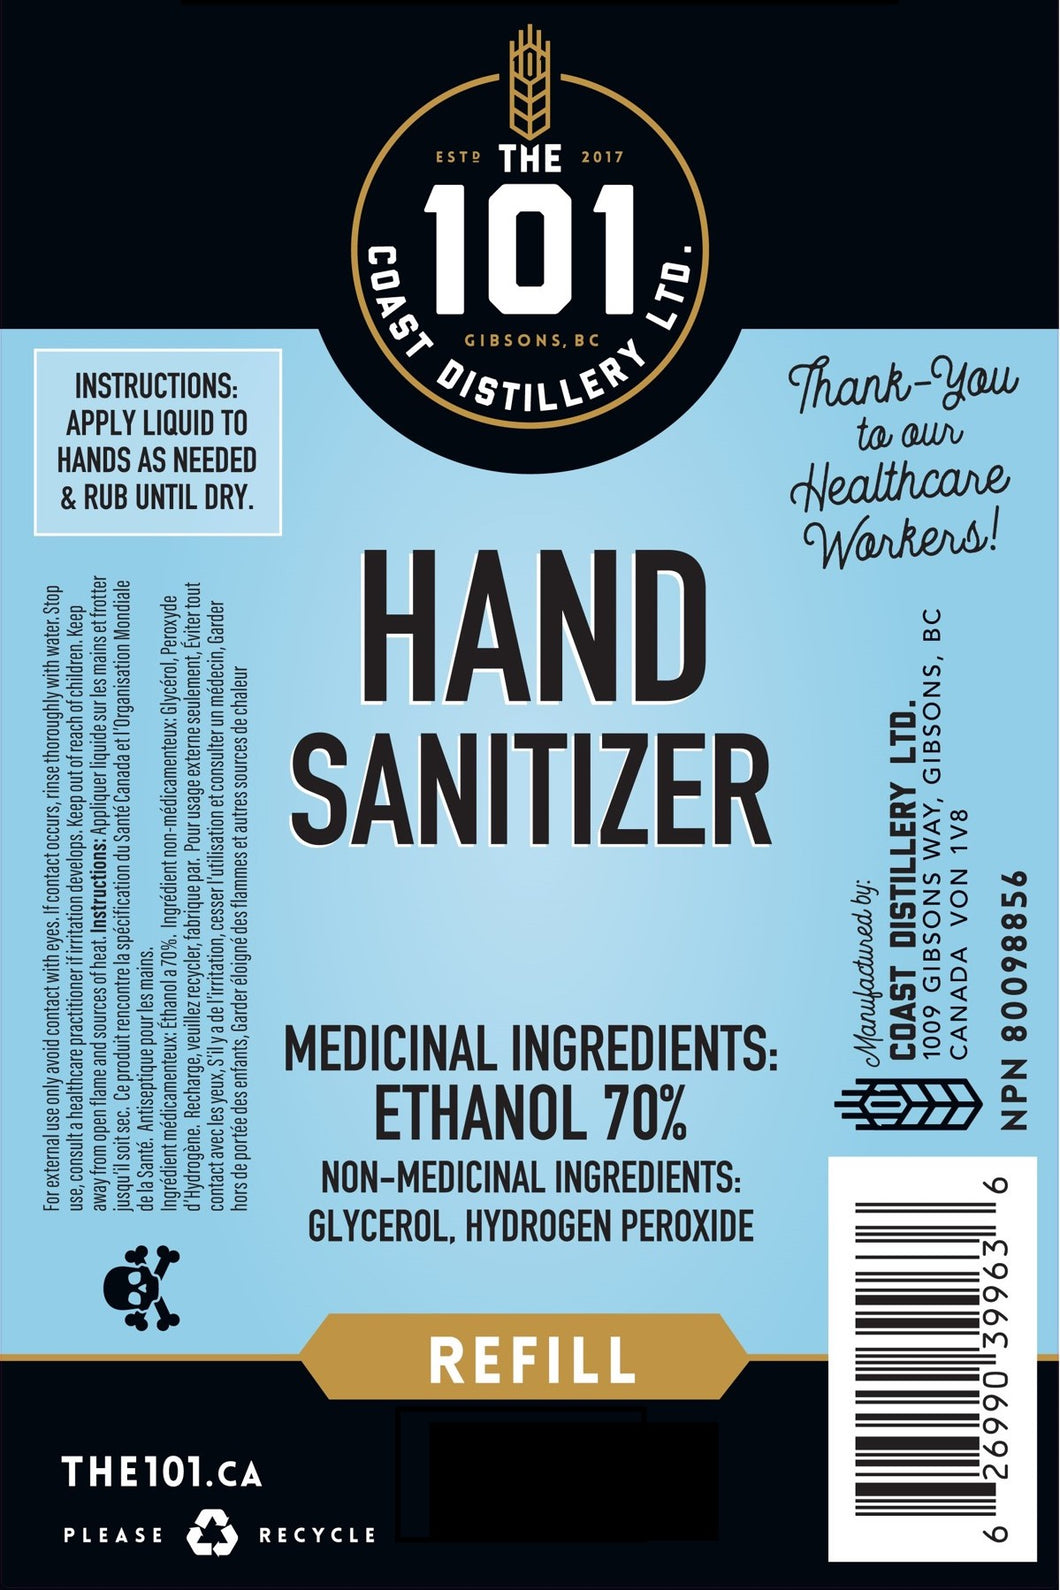 HELPING HANDS - 500 ml Hand Sanitizer for Donation